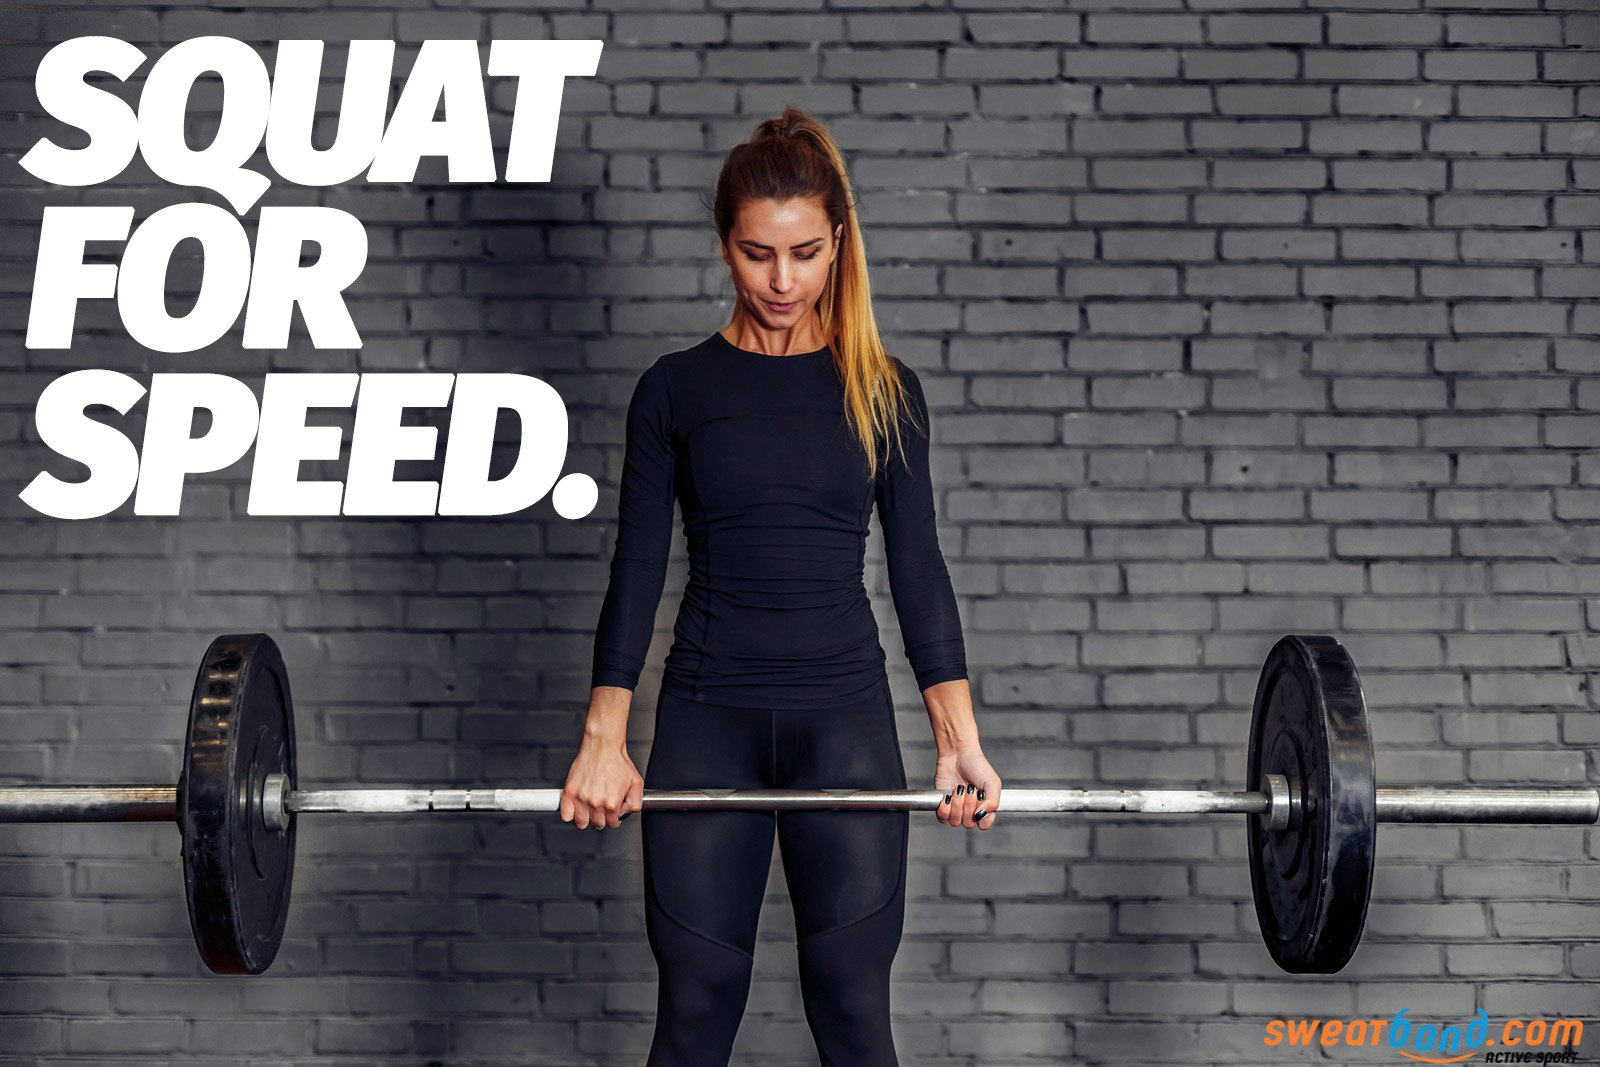 Add squats to your running training to build up muscles and increase speed